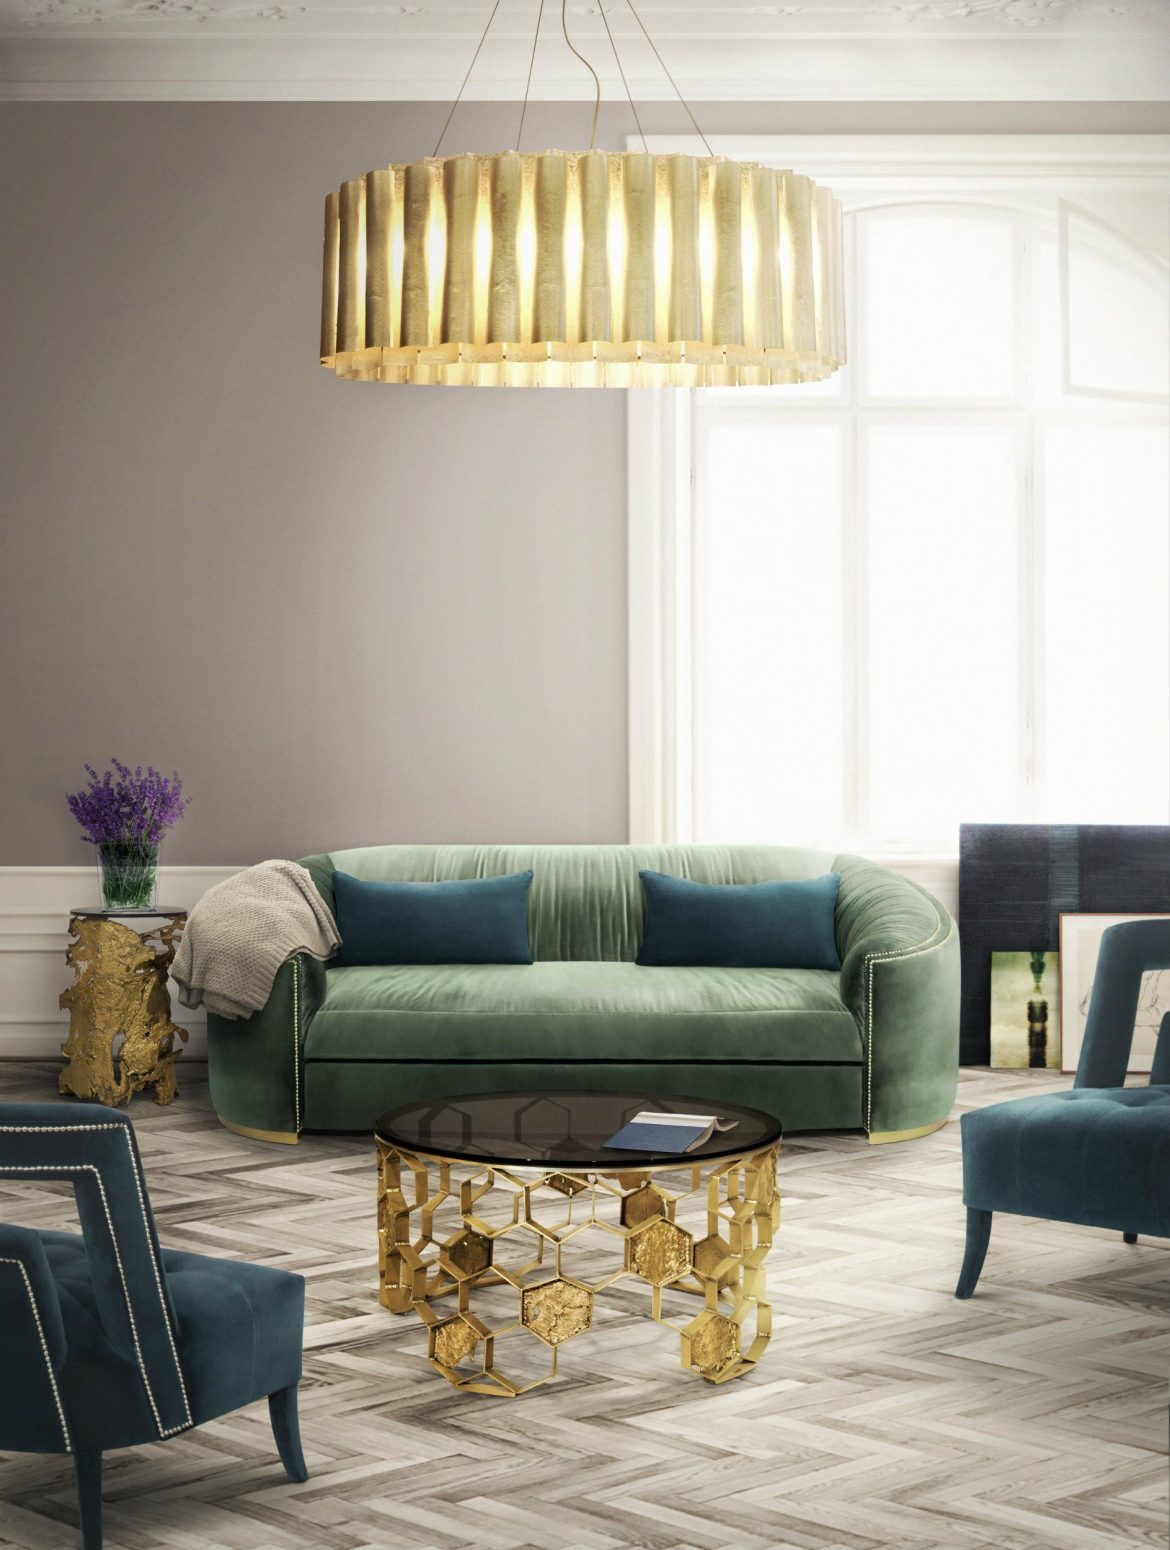 The World's Top 6 Expensive Furniture Brands